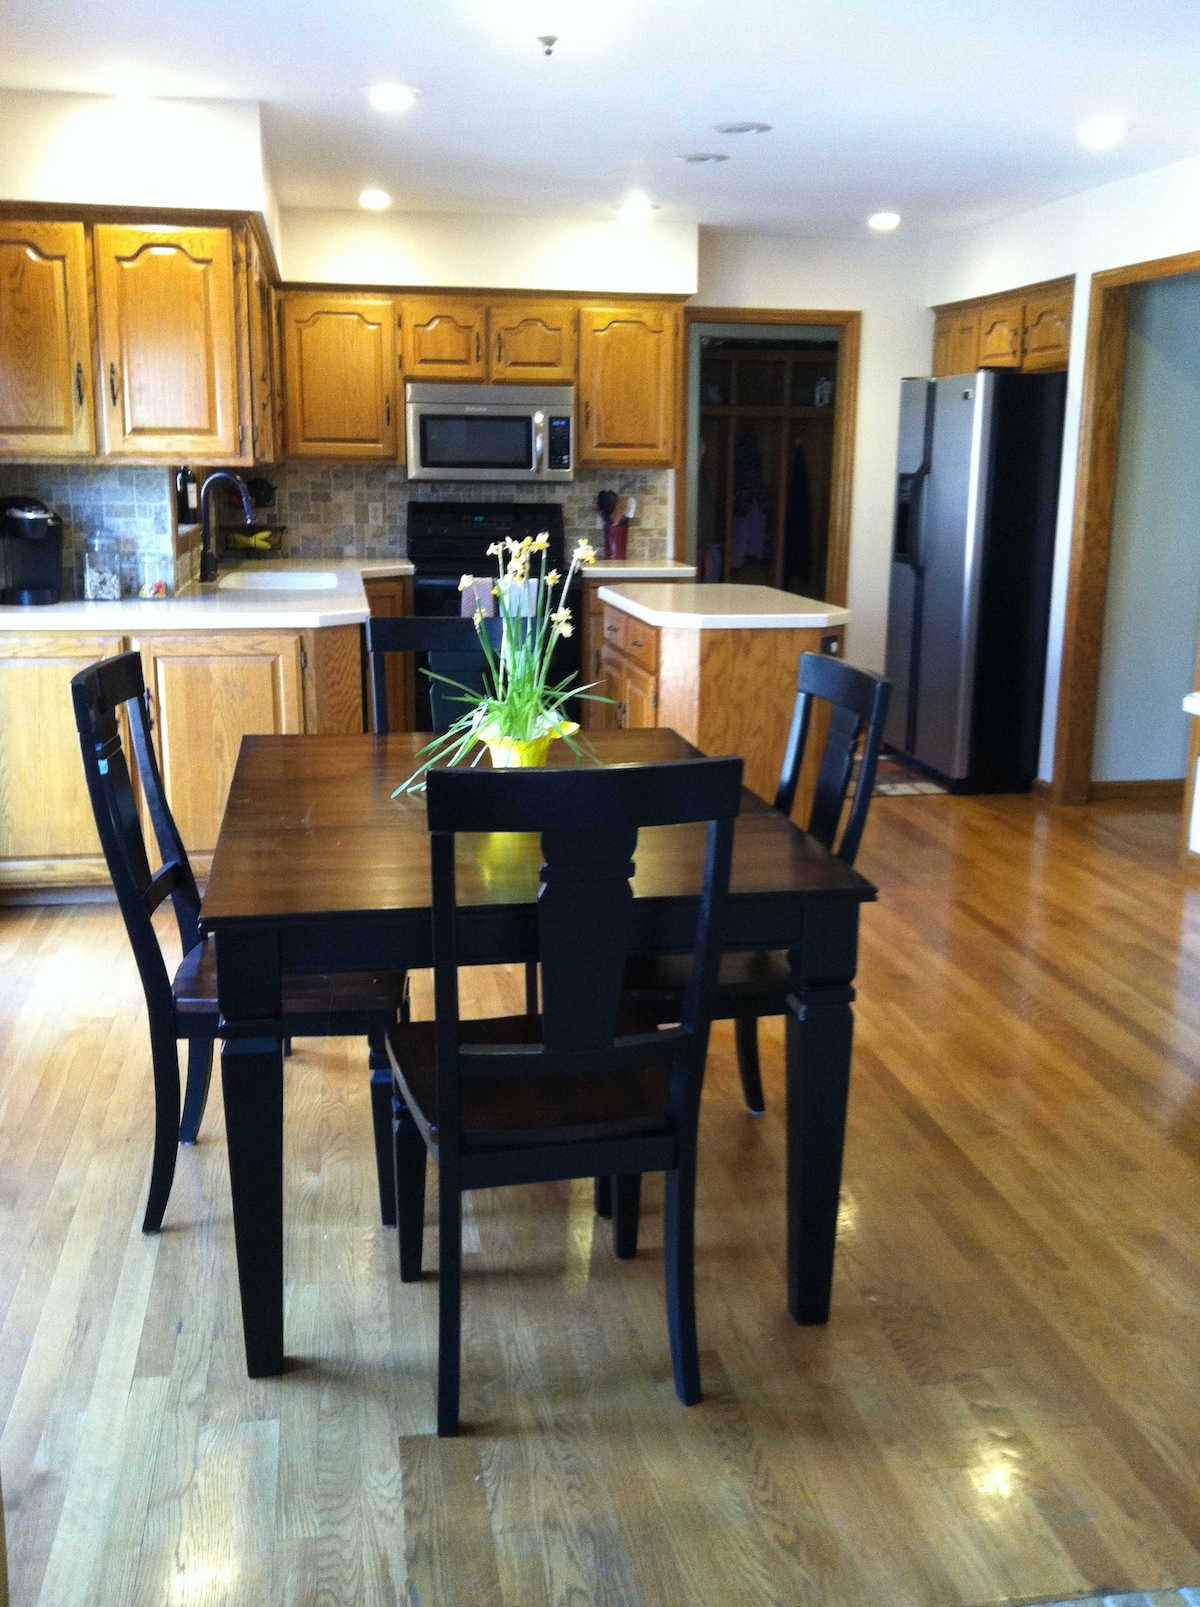 Warm and inviting kitchen. Newer appliances and fully stocked cabinets.